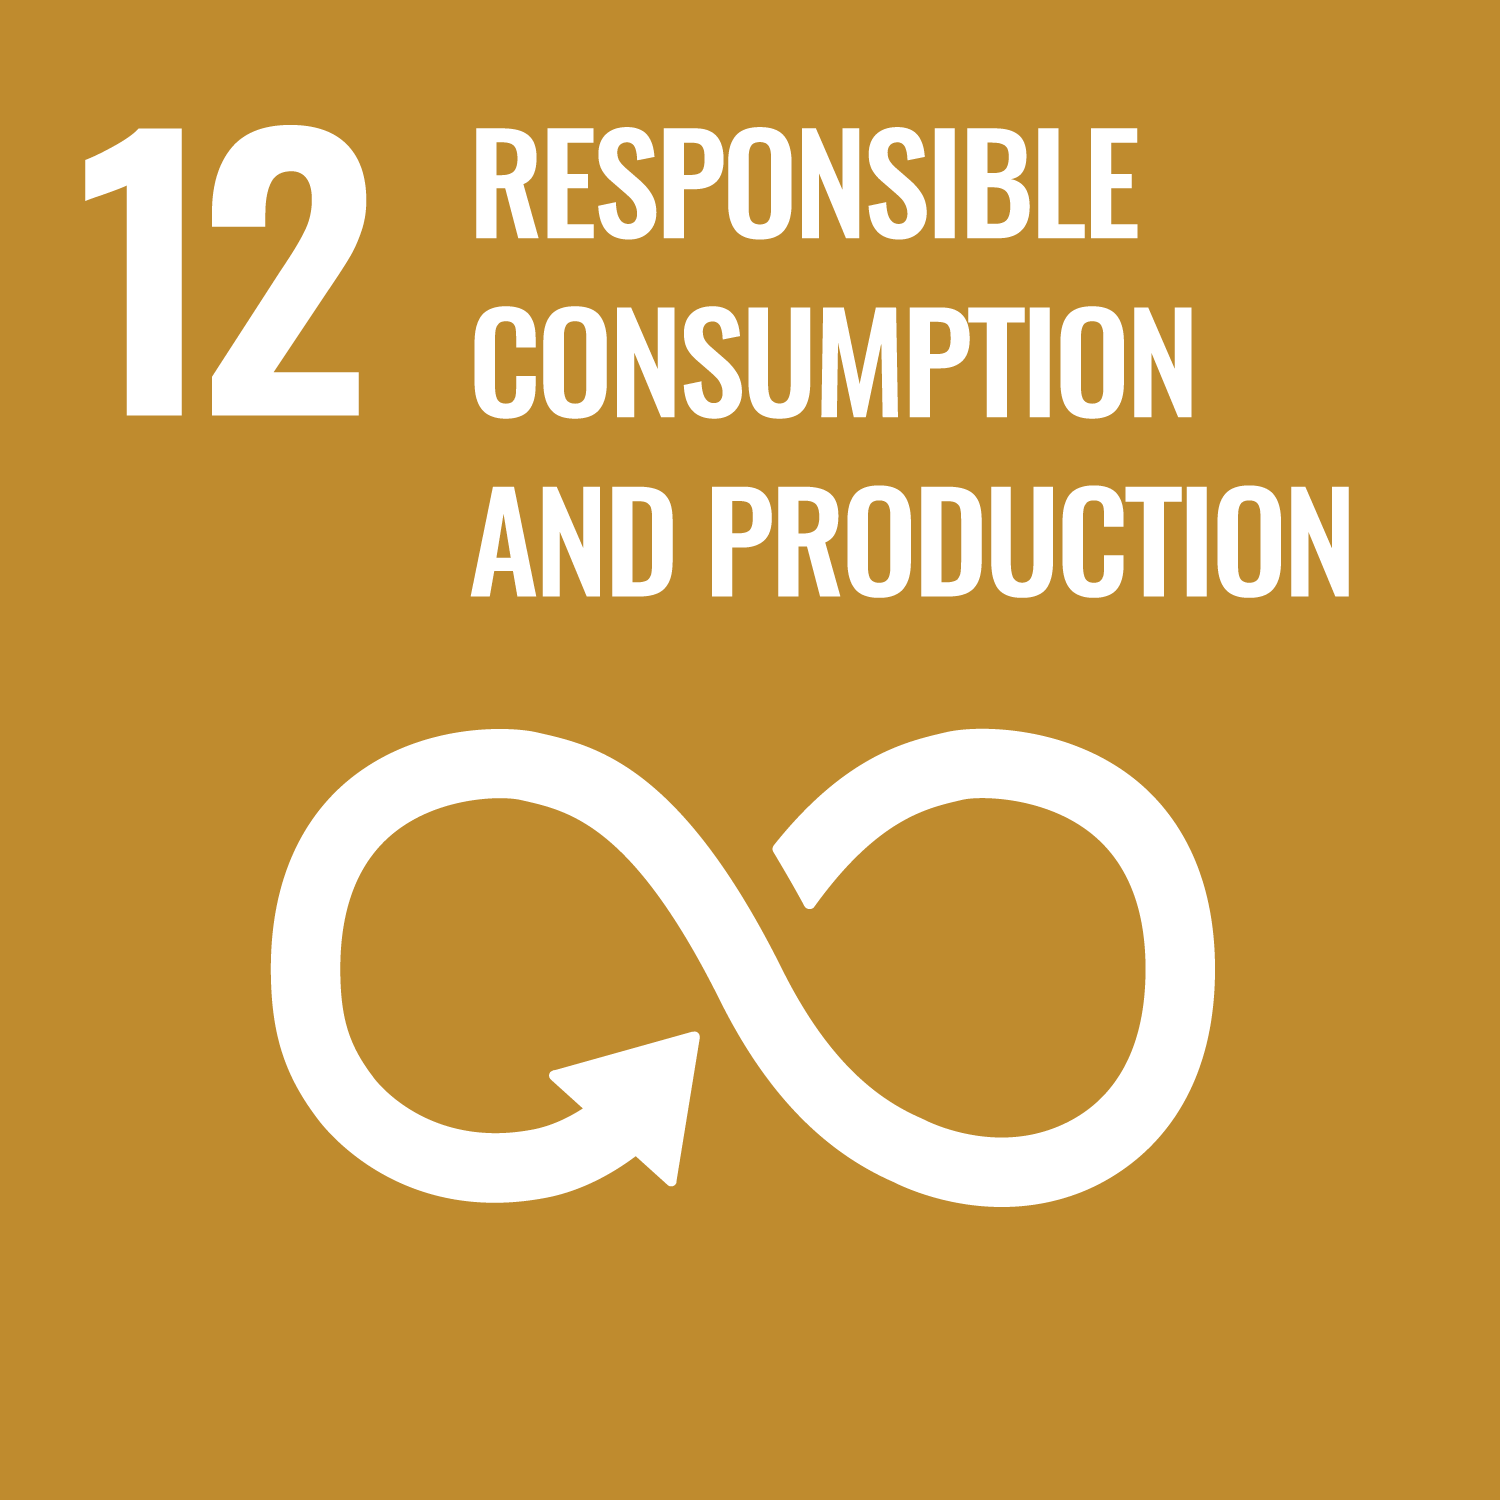 Responsible consumption and production.